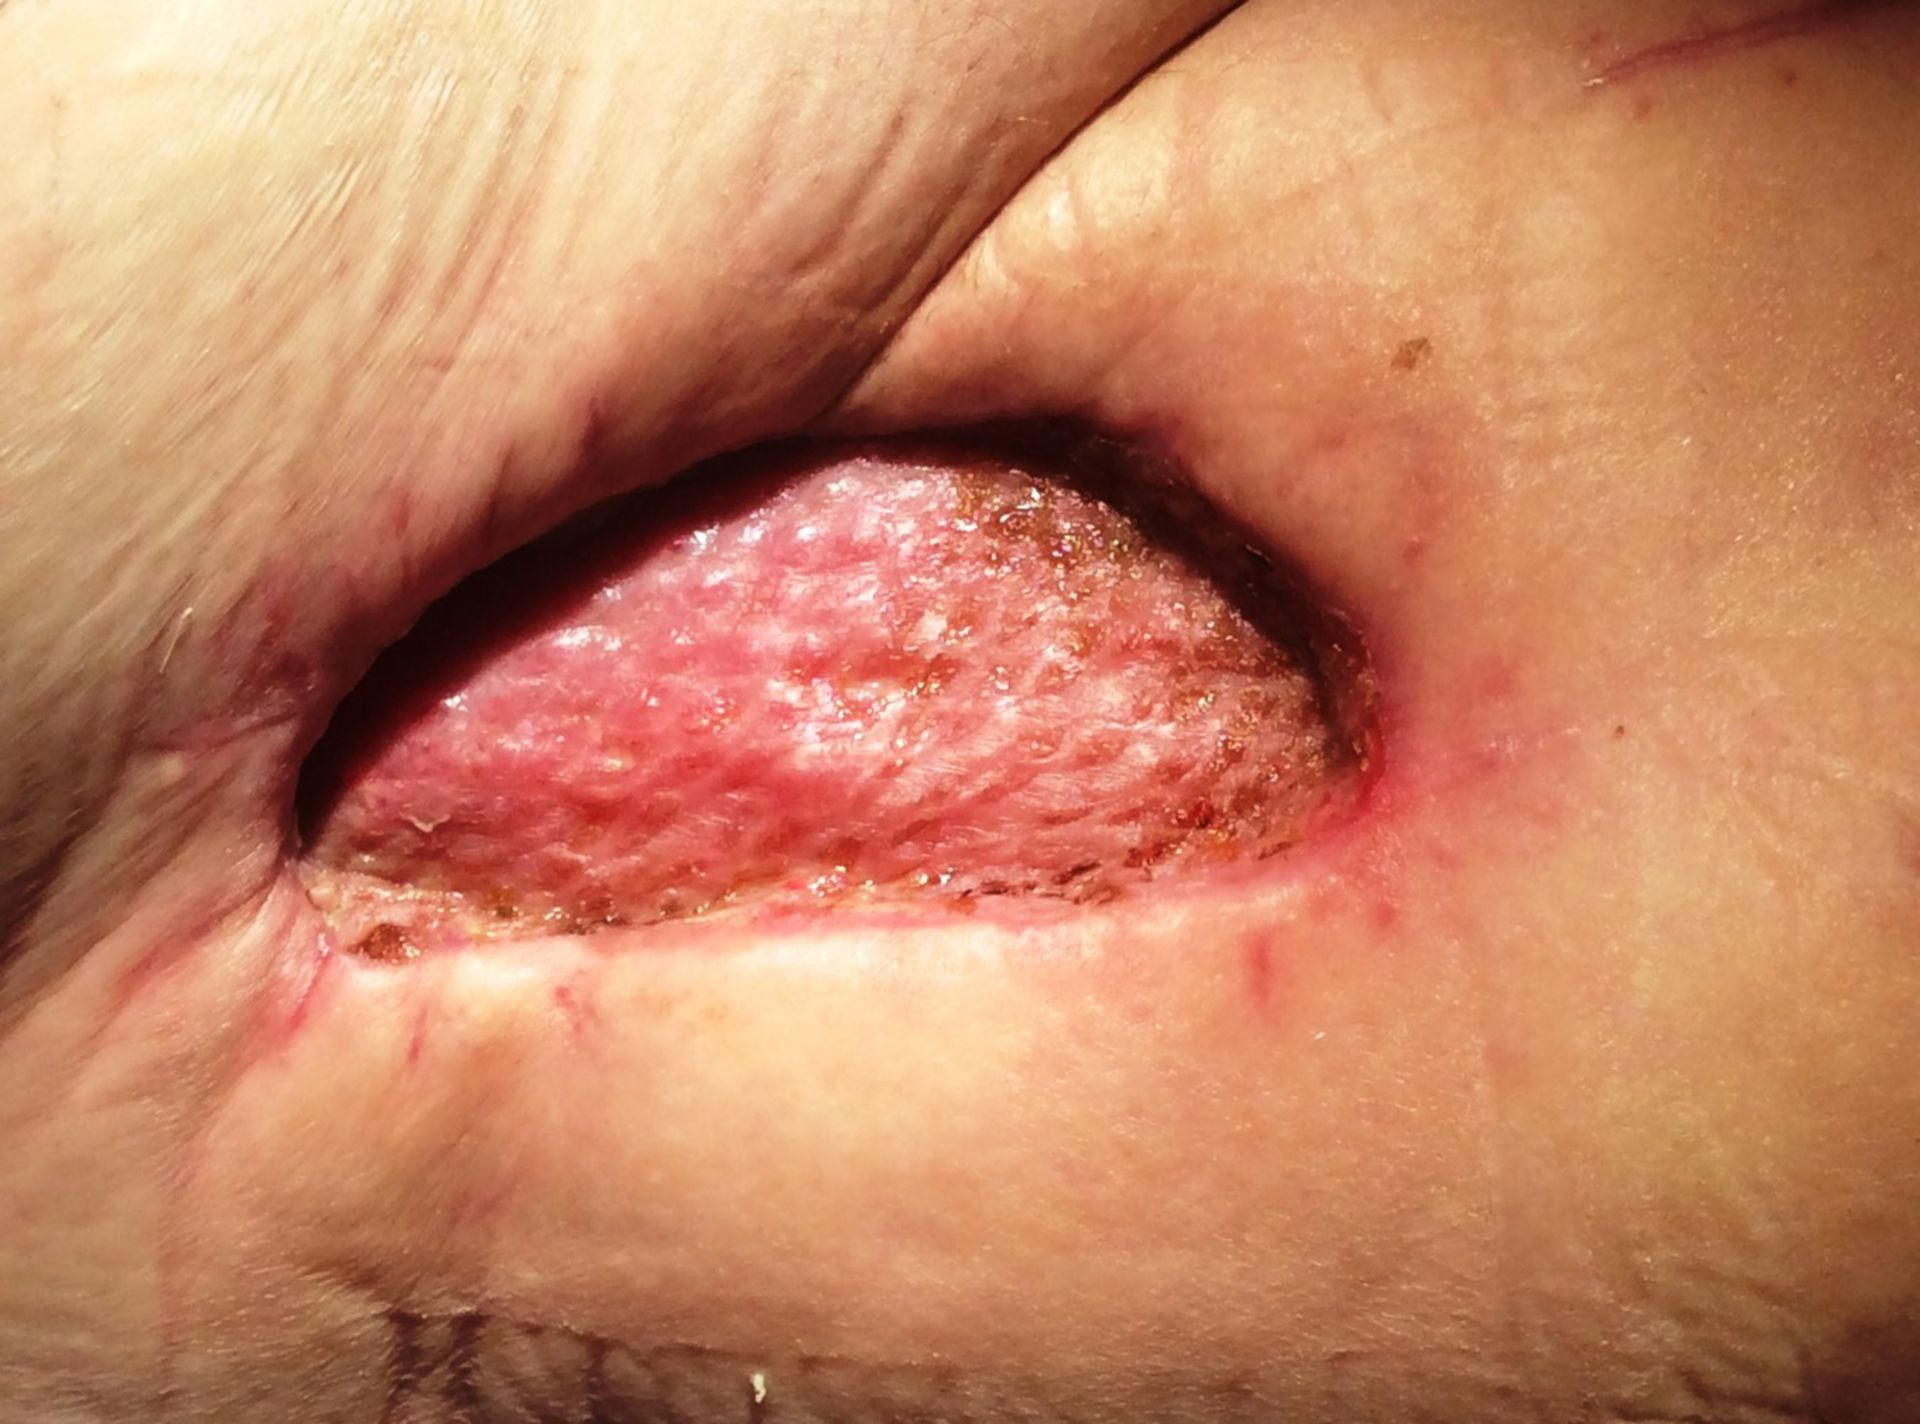 Result 8 days after skin transplant right groin after MRSA infection (Bypass surgery) and rinsing treatment with VAC Veraflow